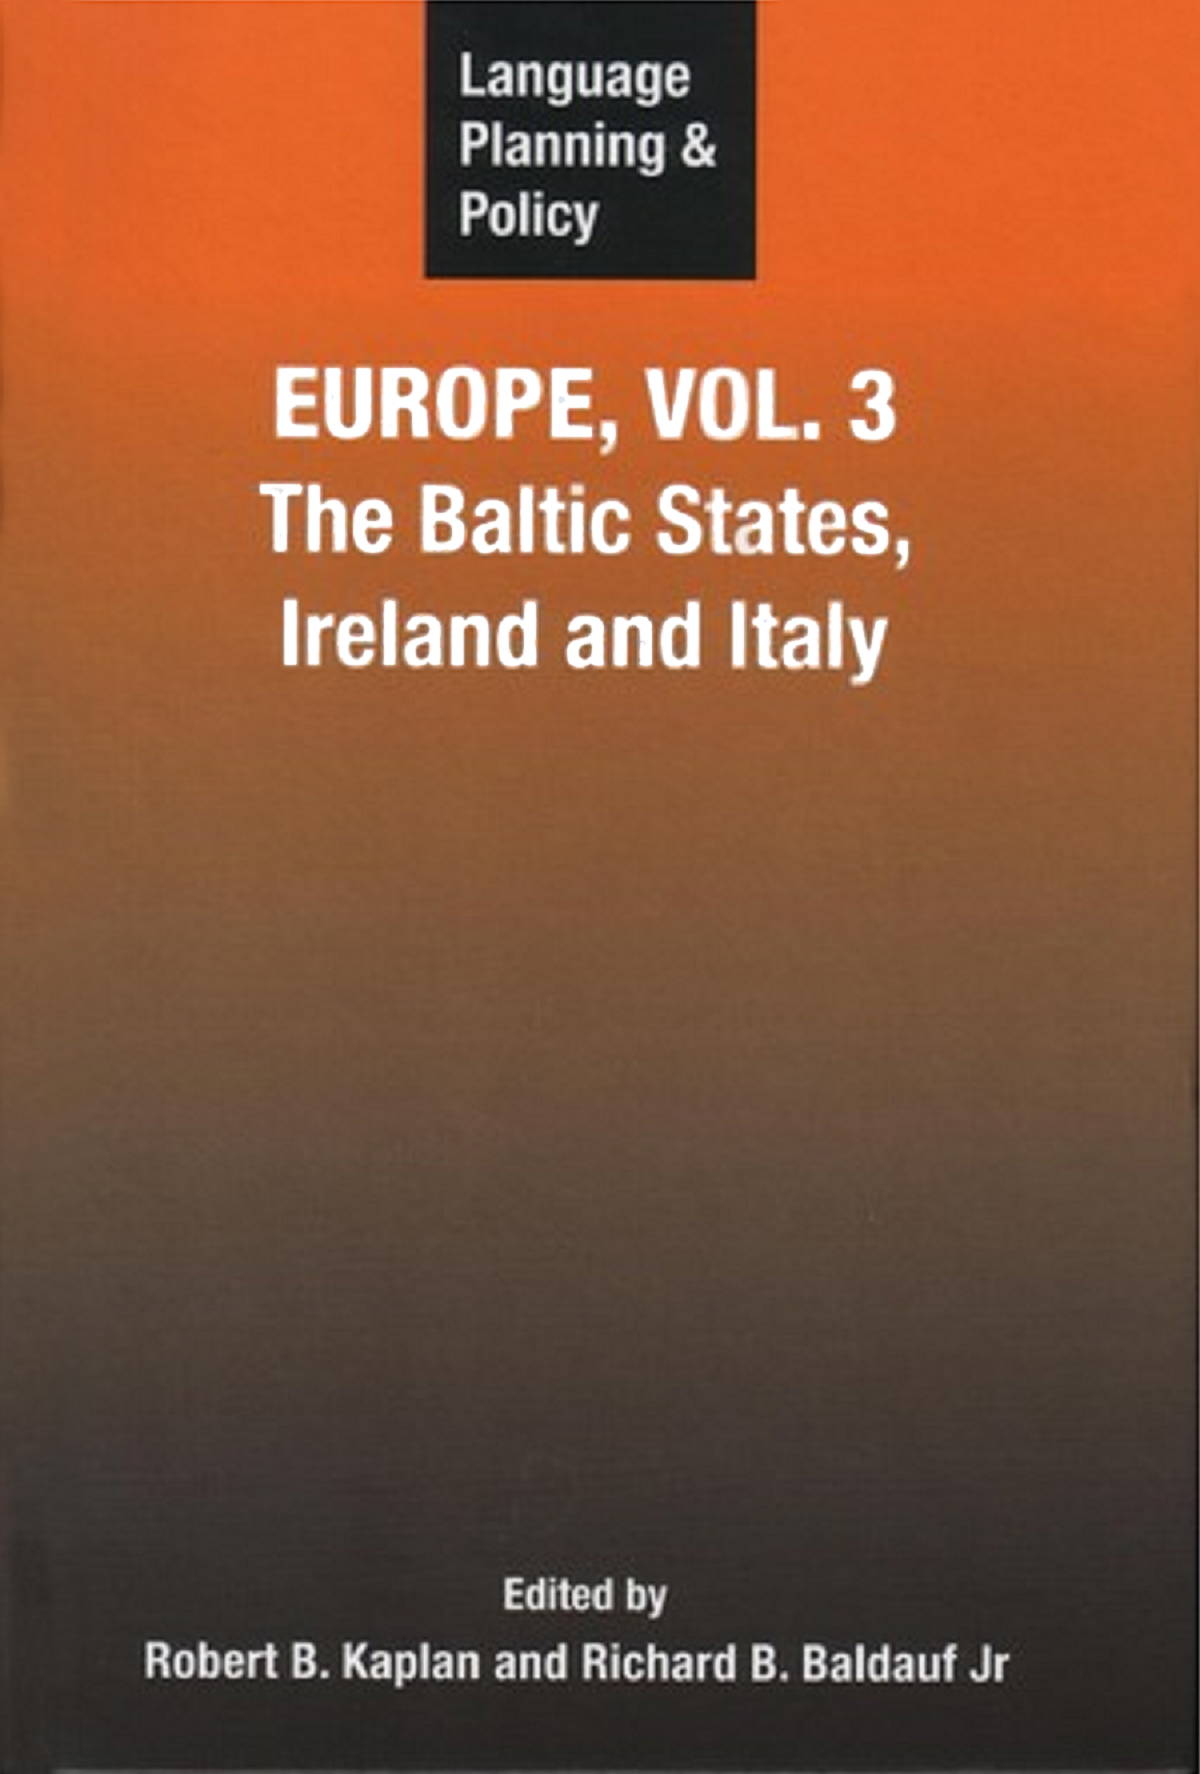 Language Planning and Policy in Europe. The Baltic States, Ireland and Italy